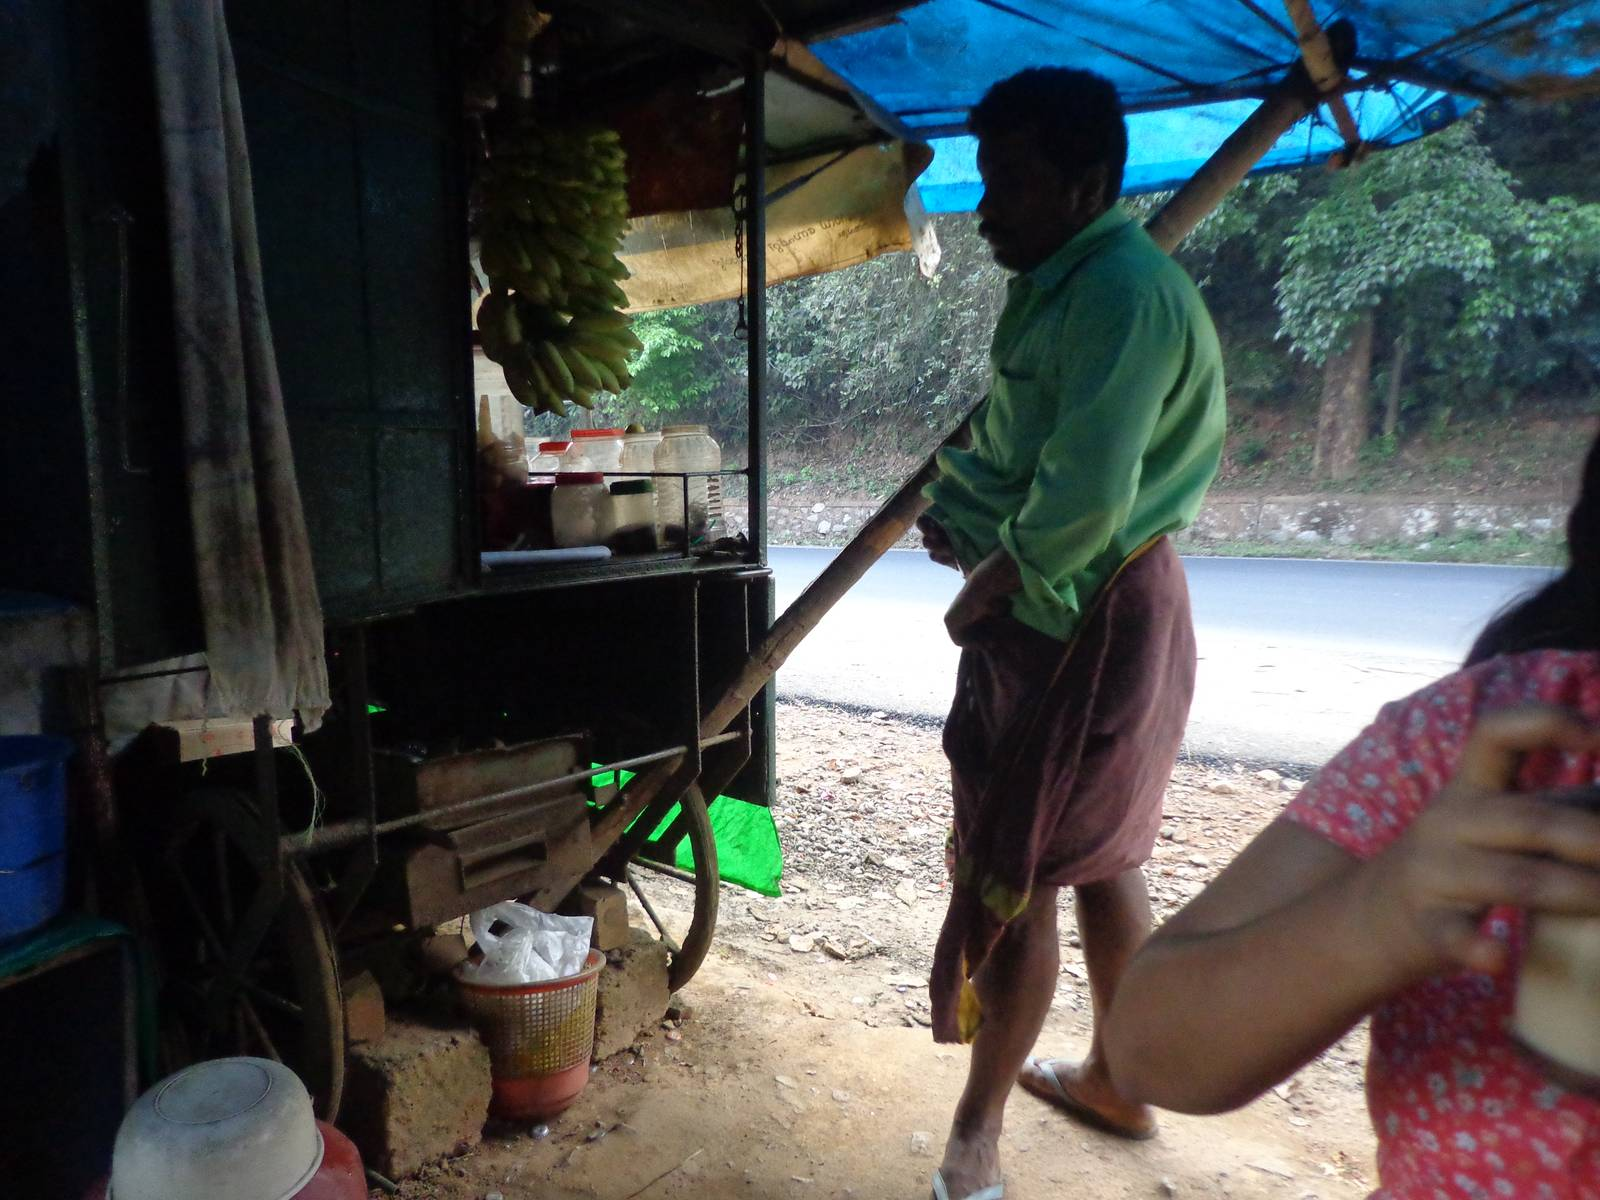 This is the first tea stall after crossing Wayanad District border into Kozhikode.